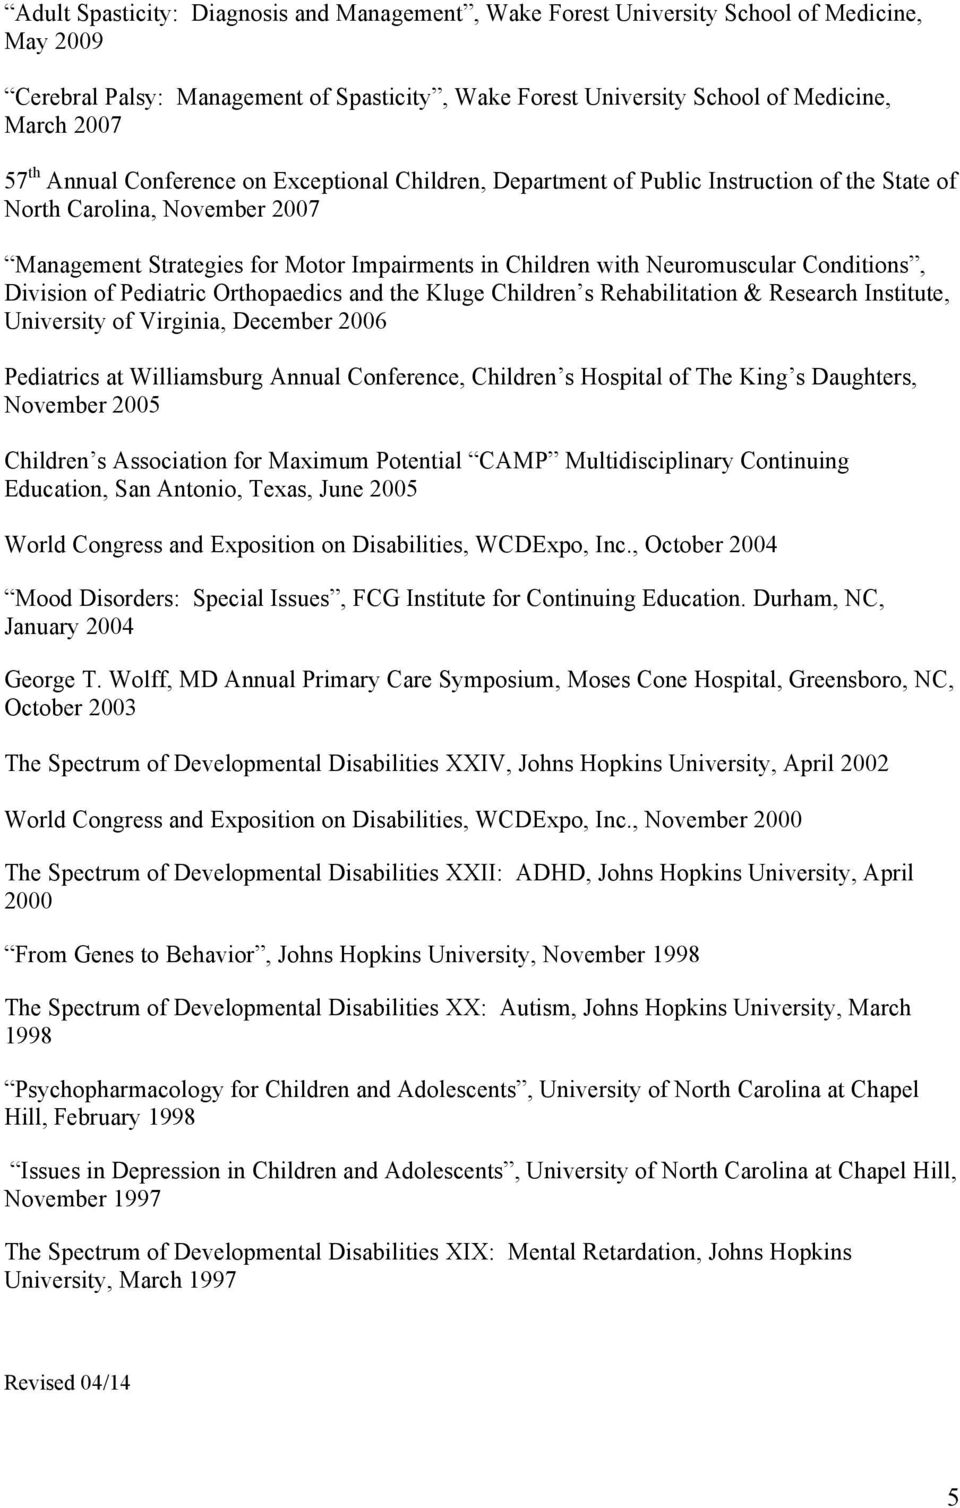 Conditions, Division of Pediatric Orthopaedics and the Kluge Children s Rehabilitation & Research Institute, University of Virginia, December 2006 Pediatrics at Williamsburg Annual Conference,